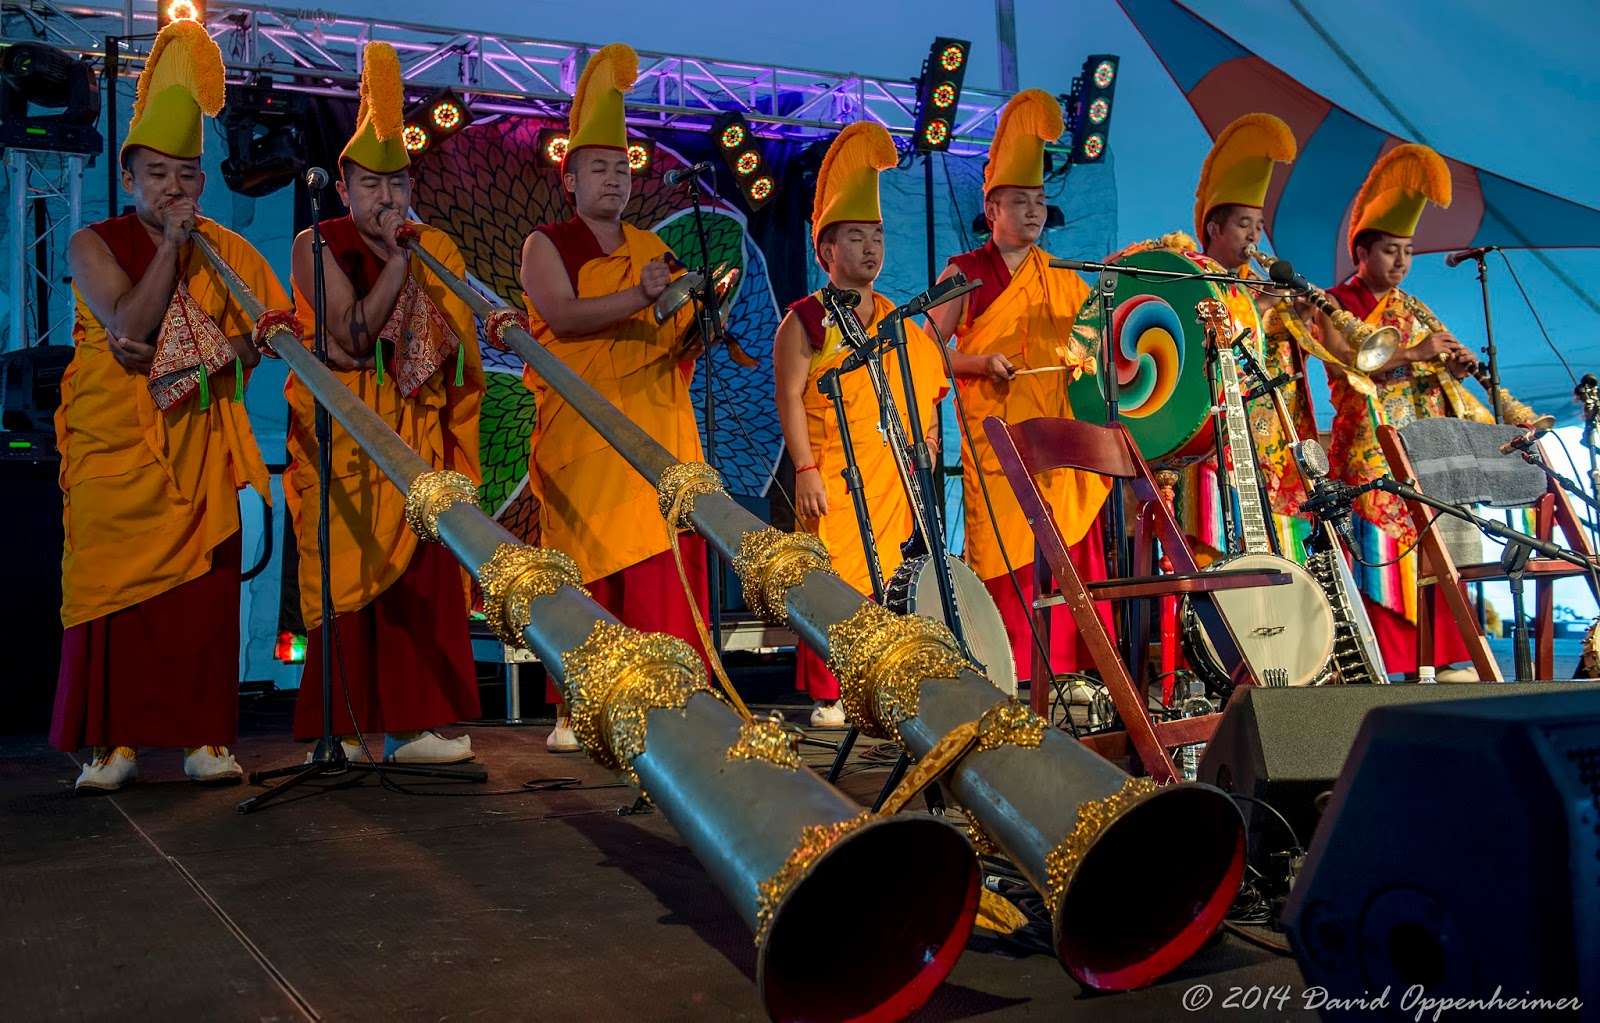 The Mystical Arts of Tibet Performing at LEAF Festival